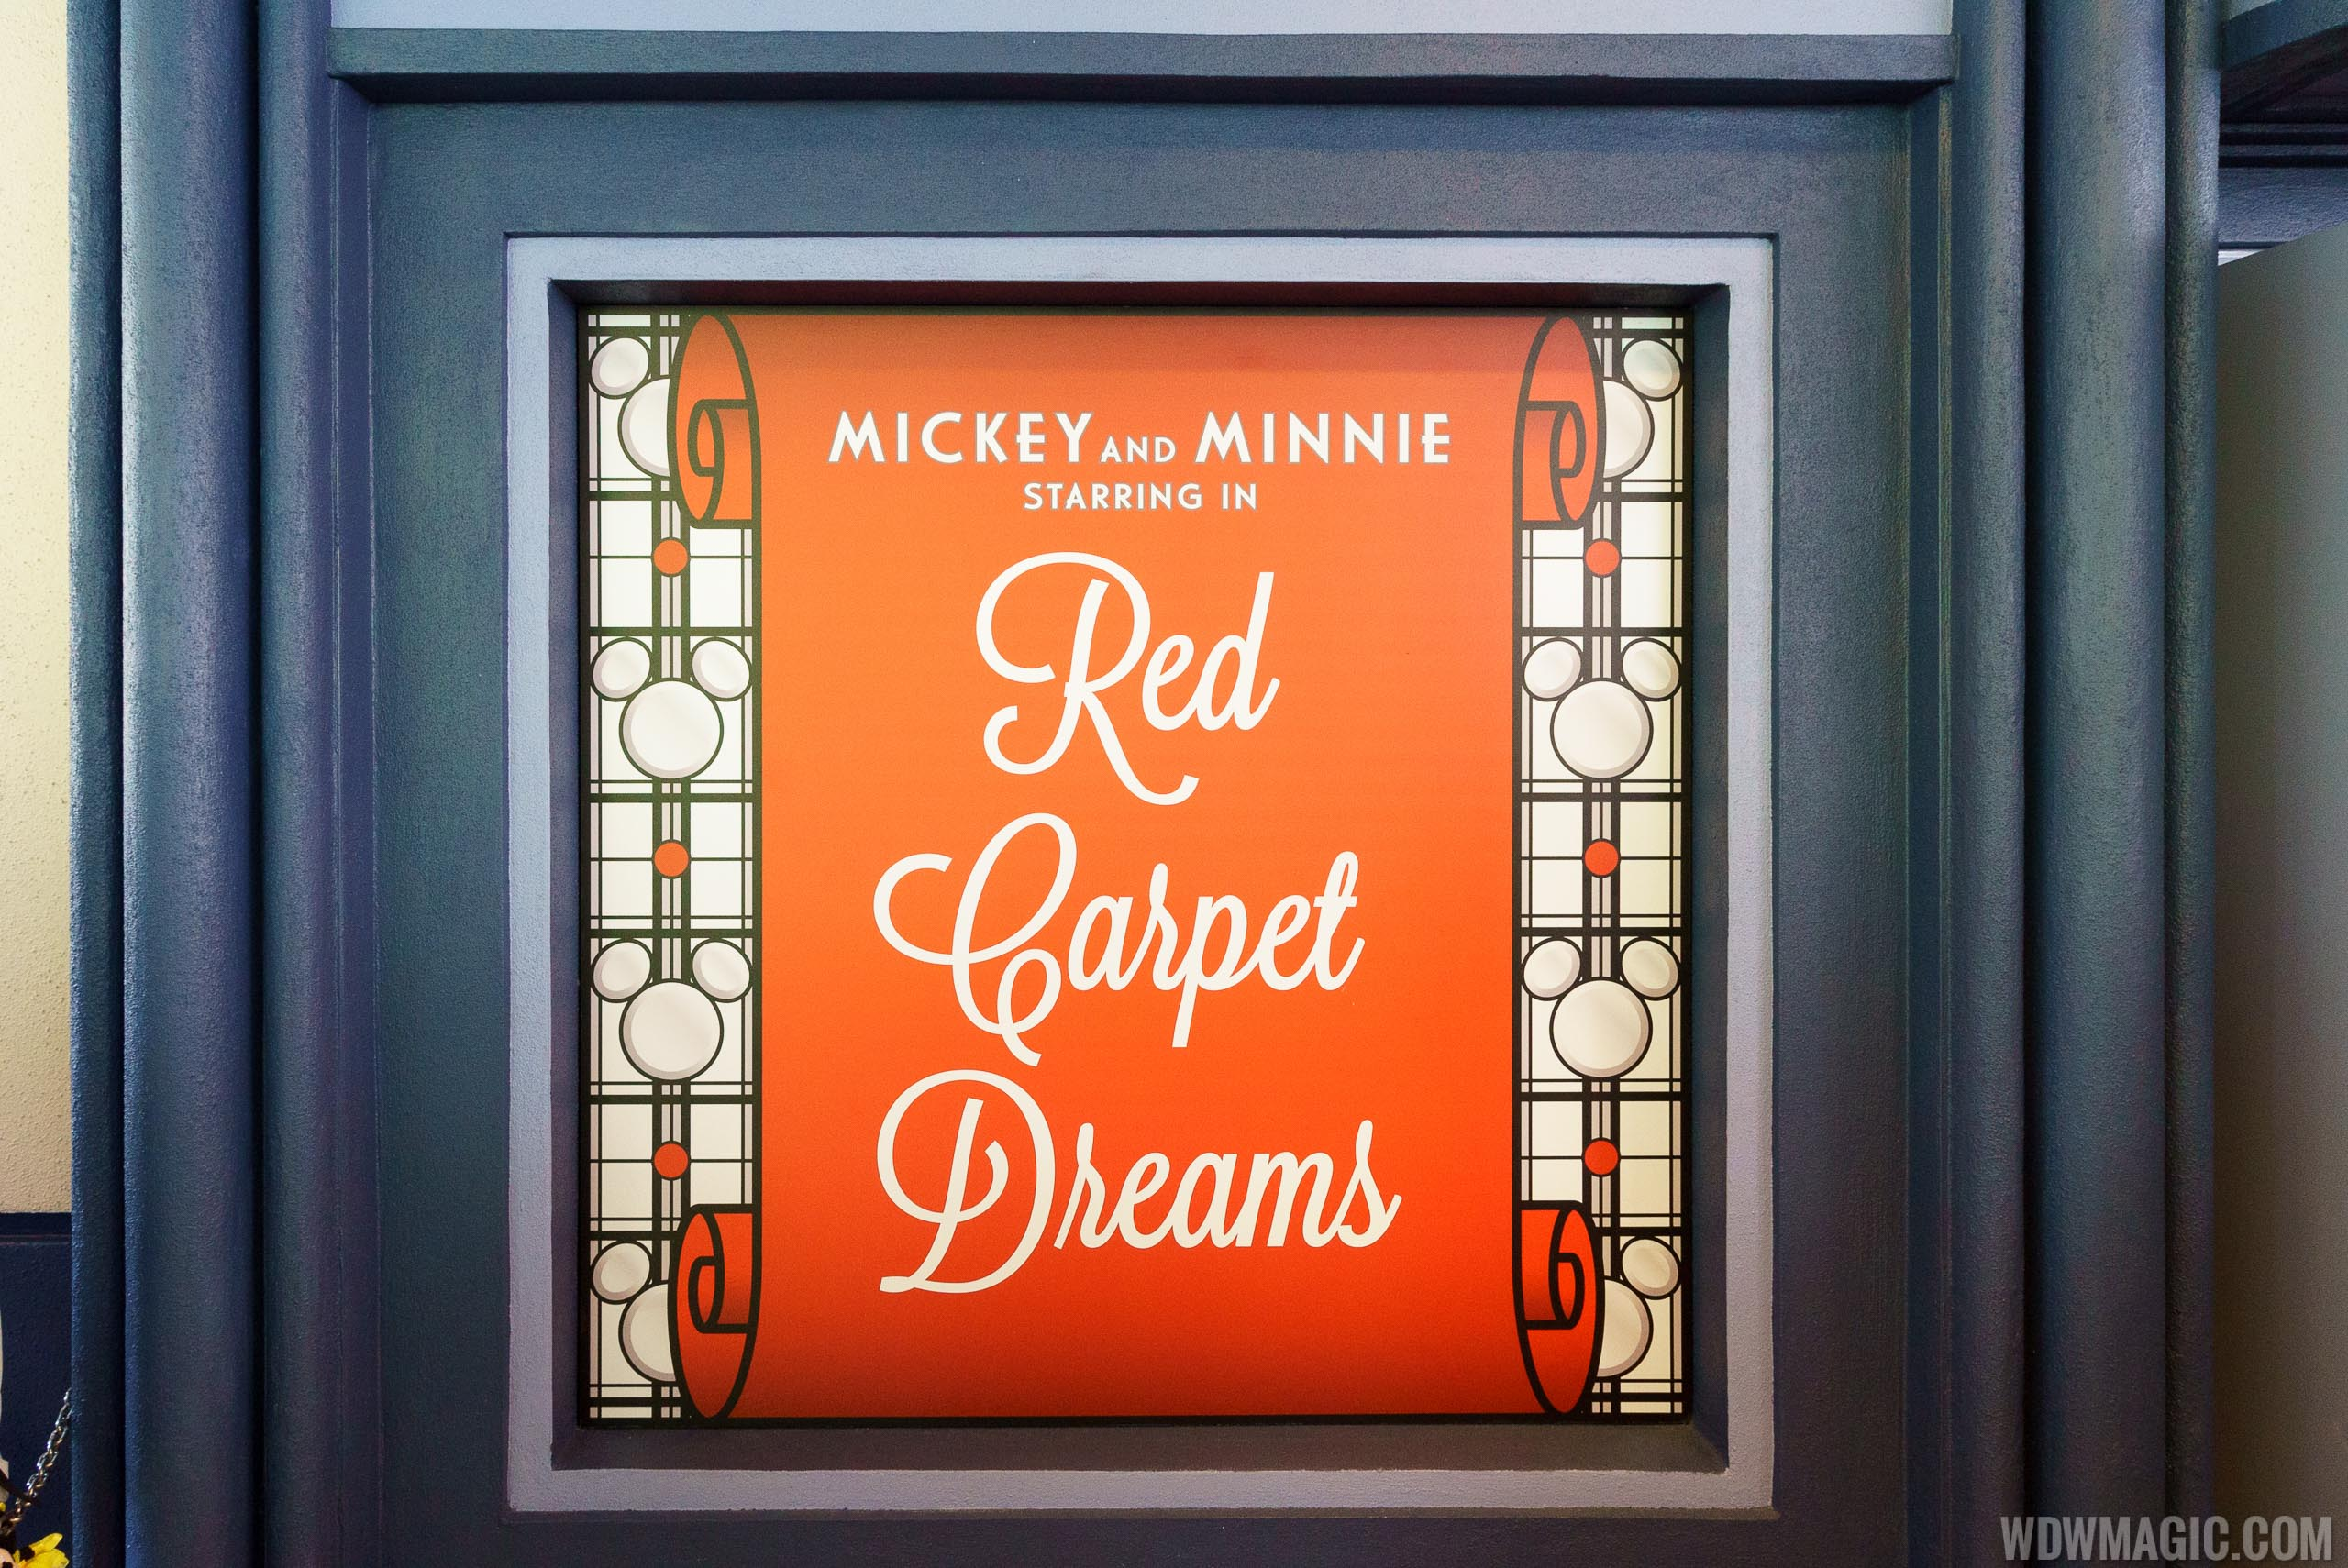 Mickey and Minnie Starring in Red Carpet Dreams signage